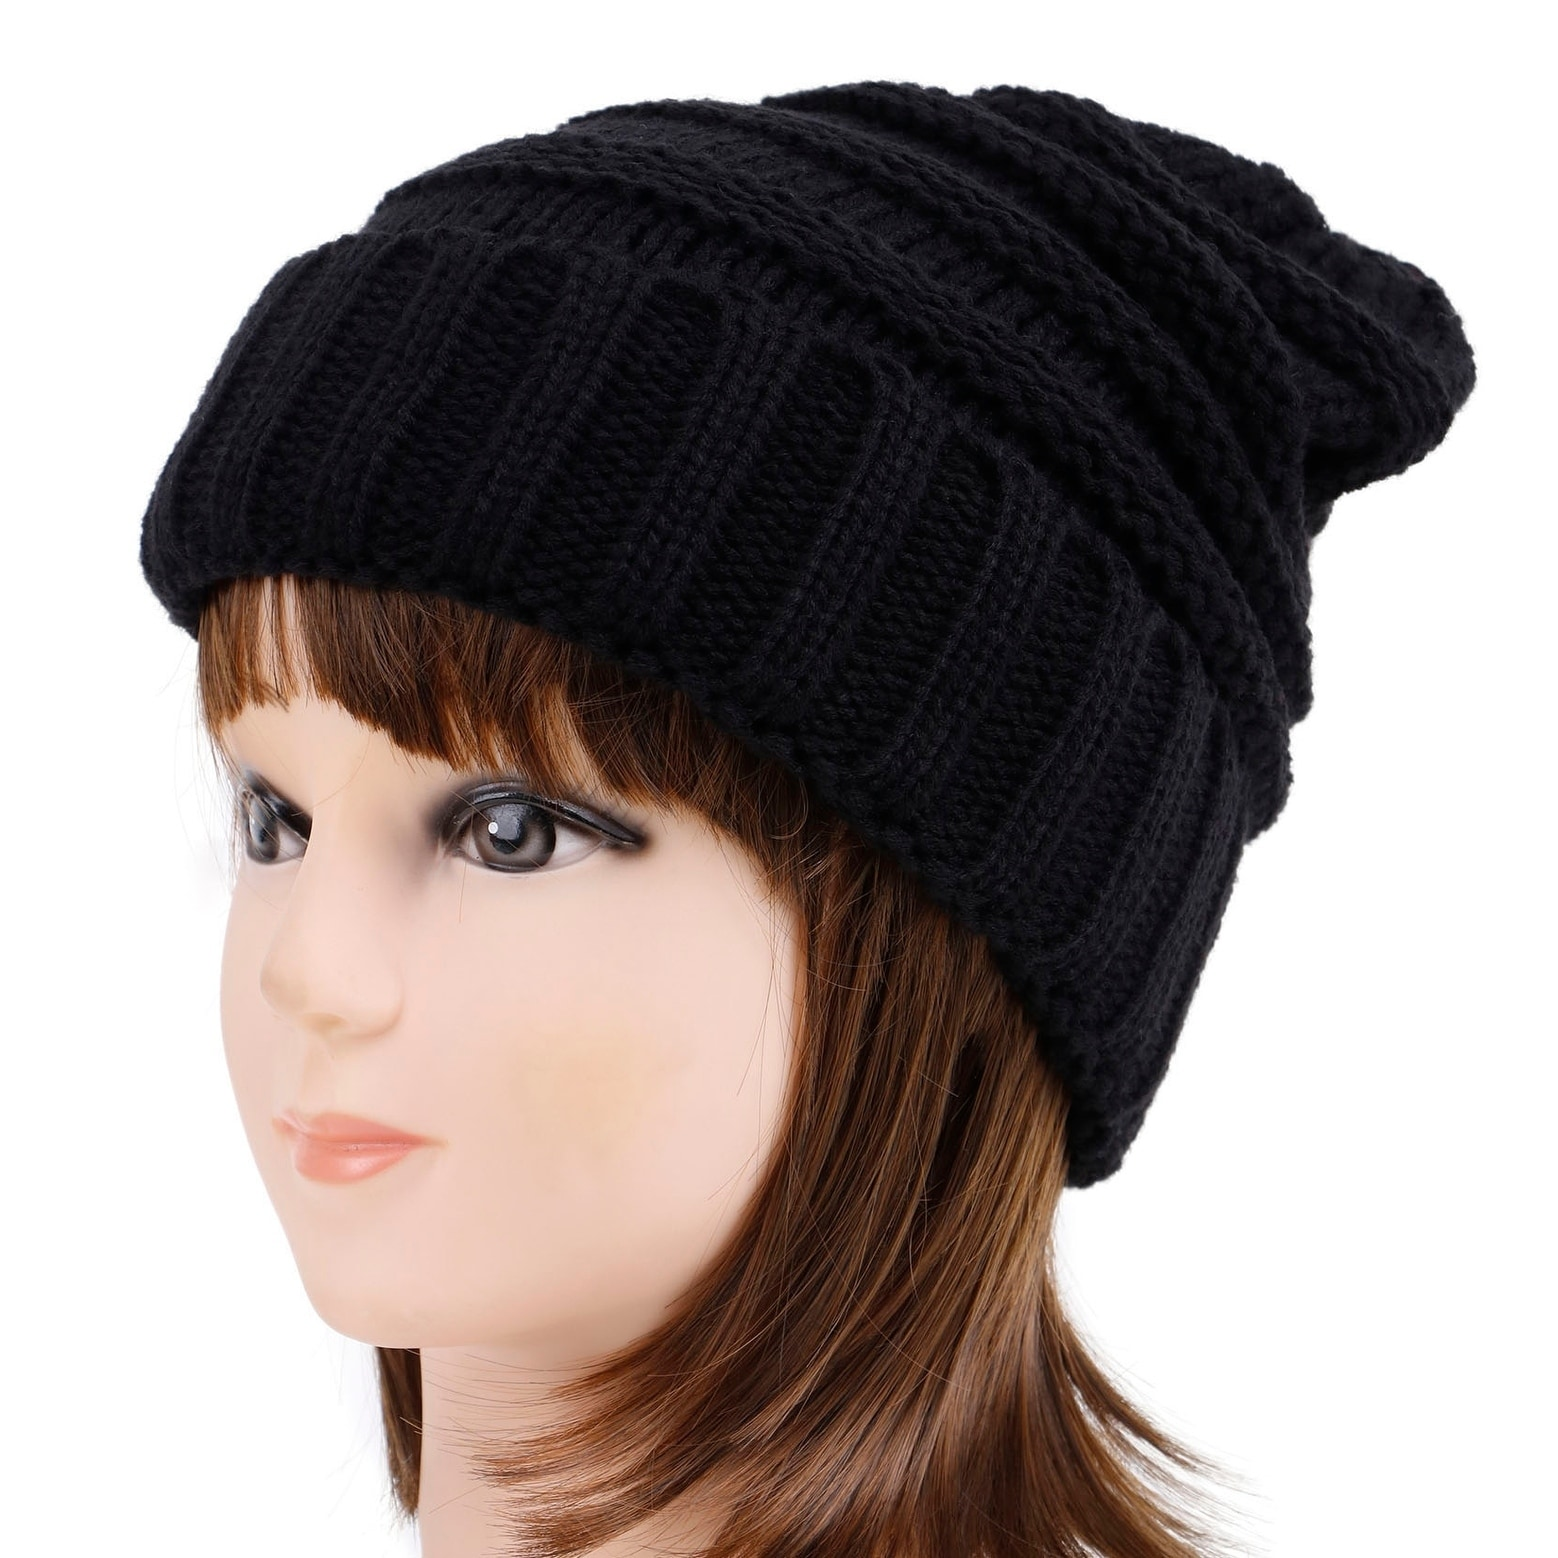 044c4bf8c09 Shop Men   Women s Chunky Soft Knitted Warm Winter Beanie Hat - Free  Shipping On Orders Over  45 - Overstock.com - 24072282